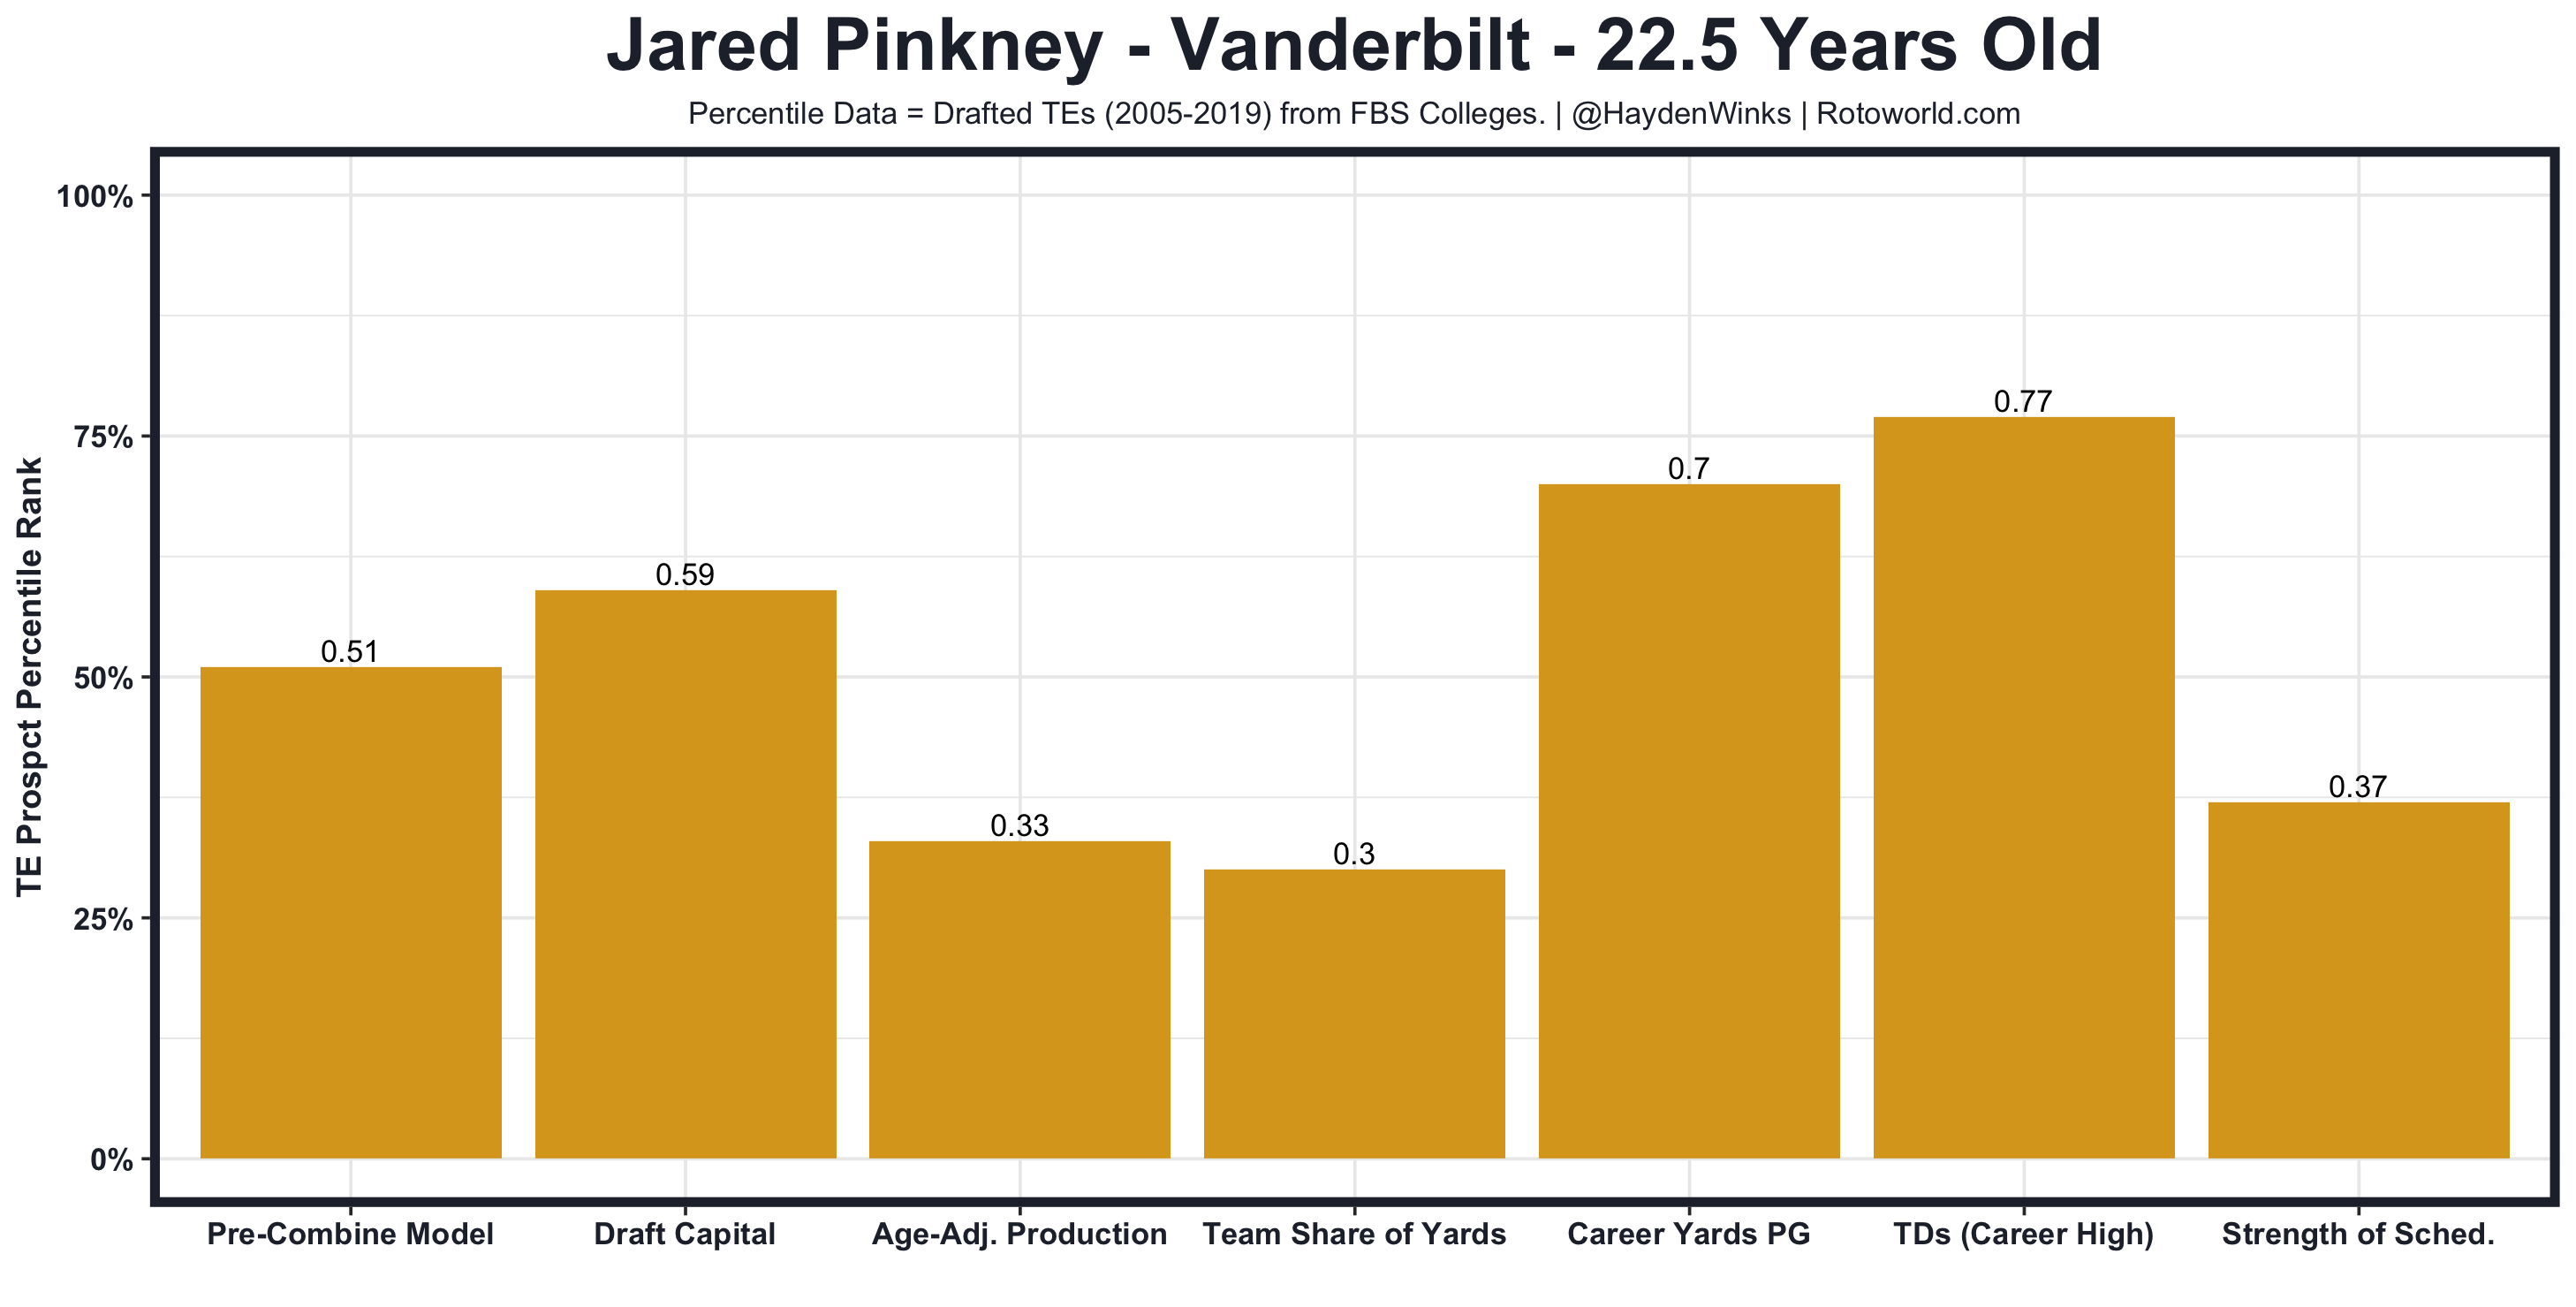 Jared Pinkney Pre-Combine